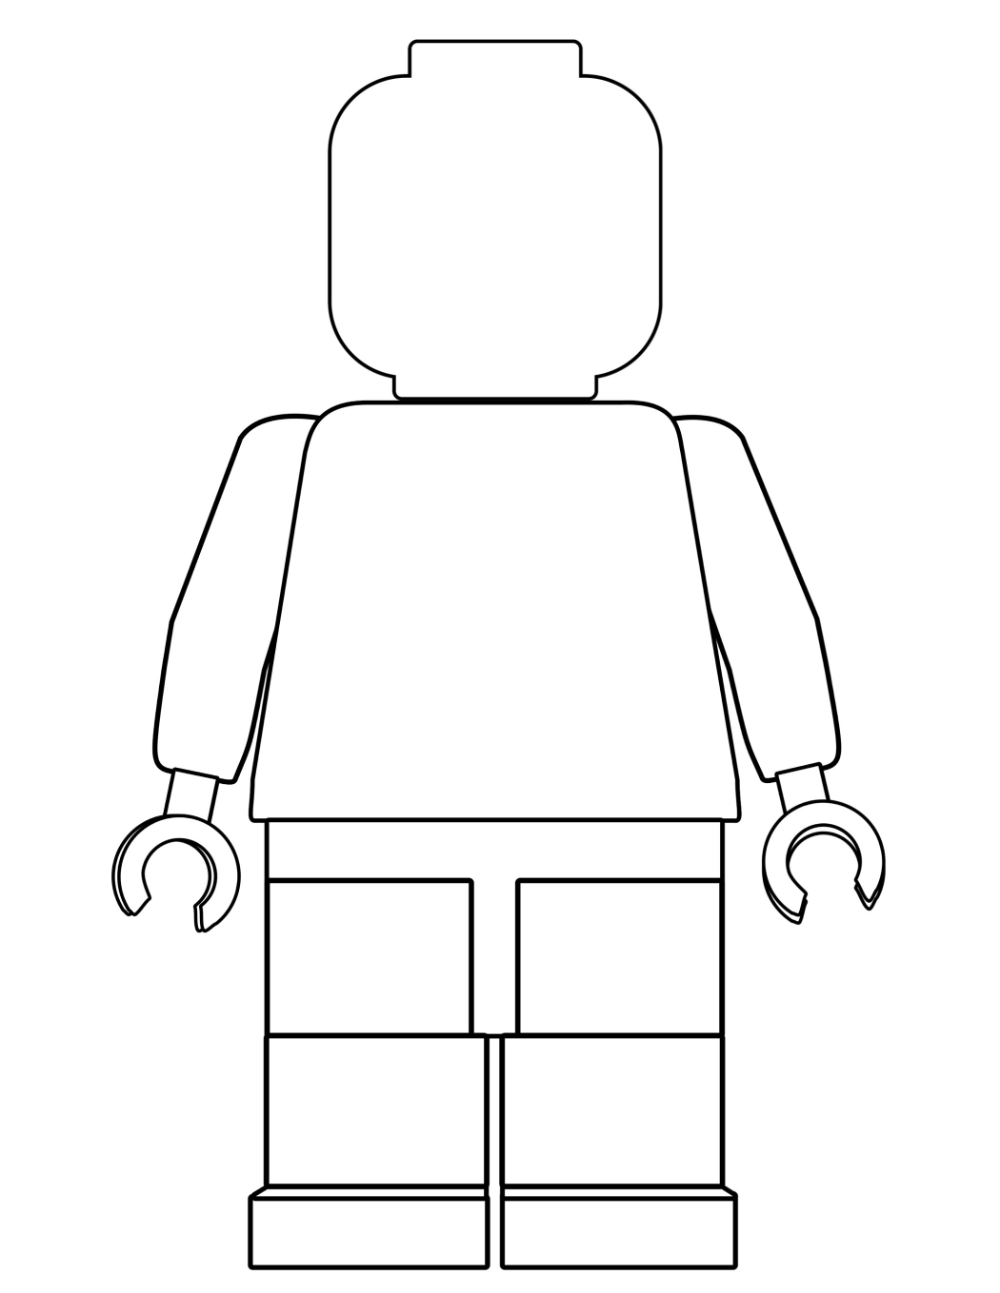 Lego Man Coloring Page Blank Lego Coloring Pages Lego Coloring Lego Coloring Sheet